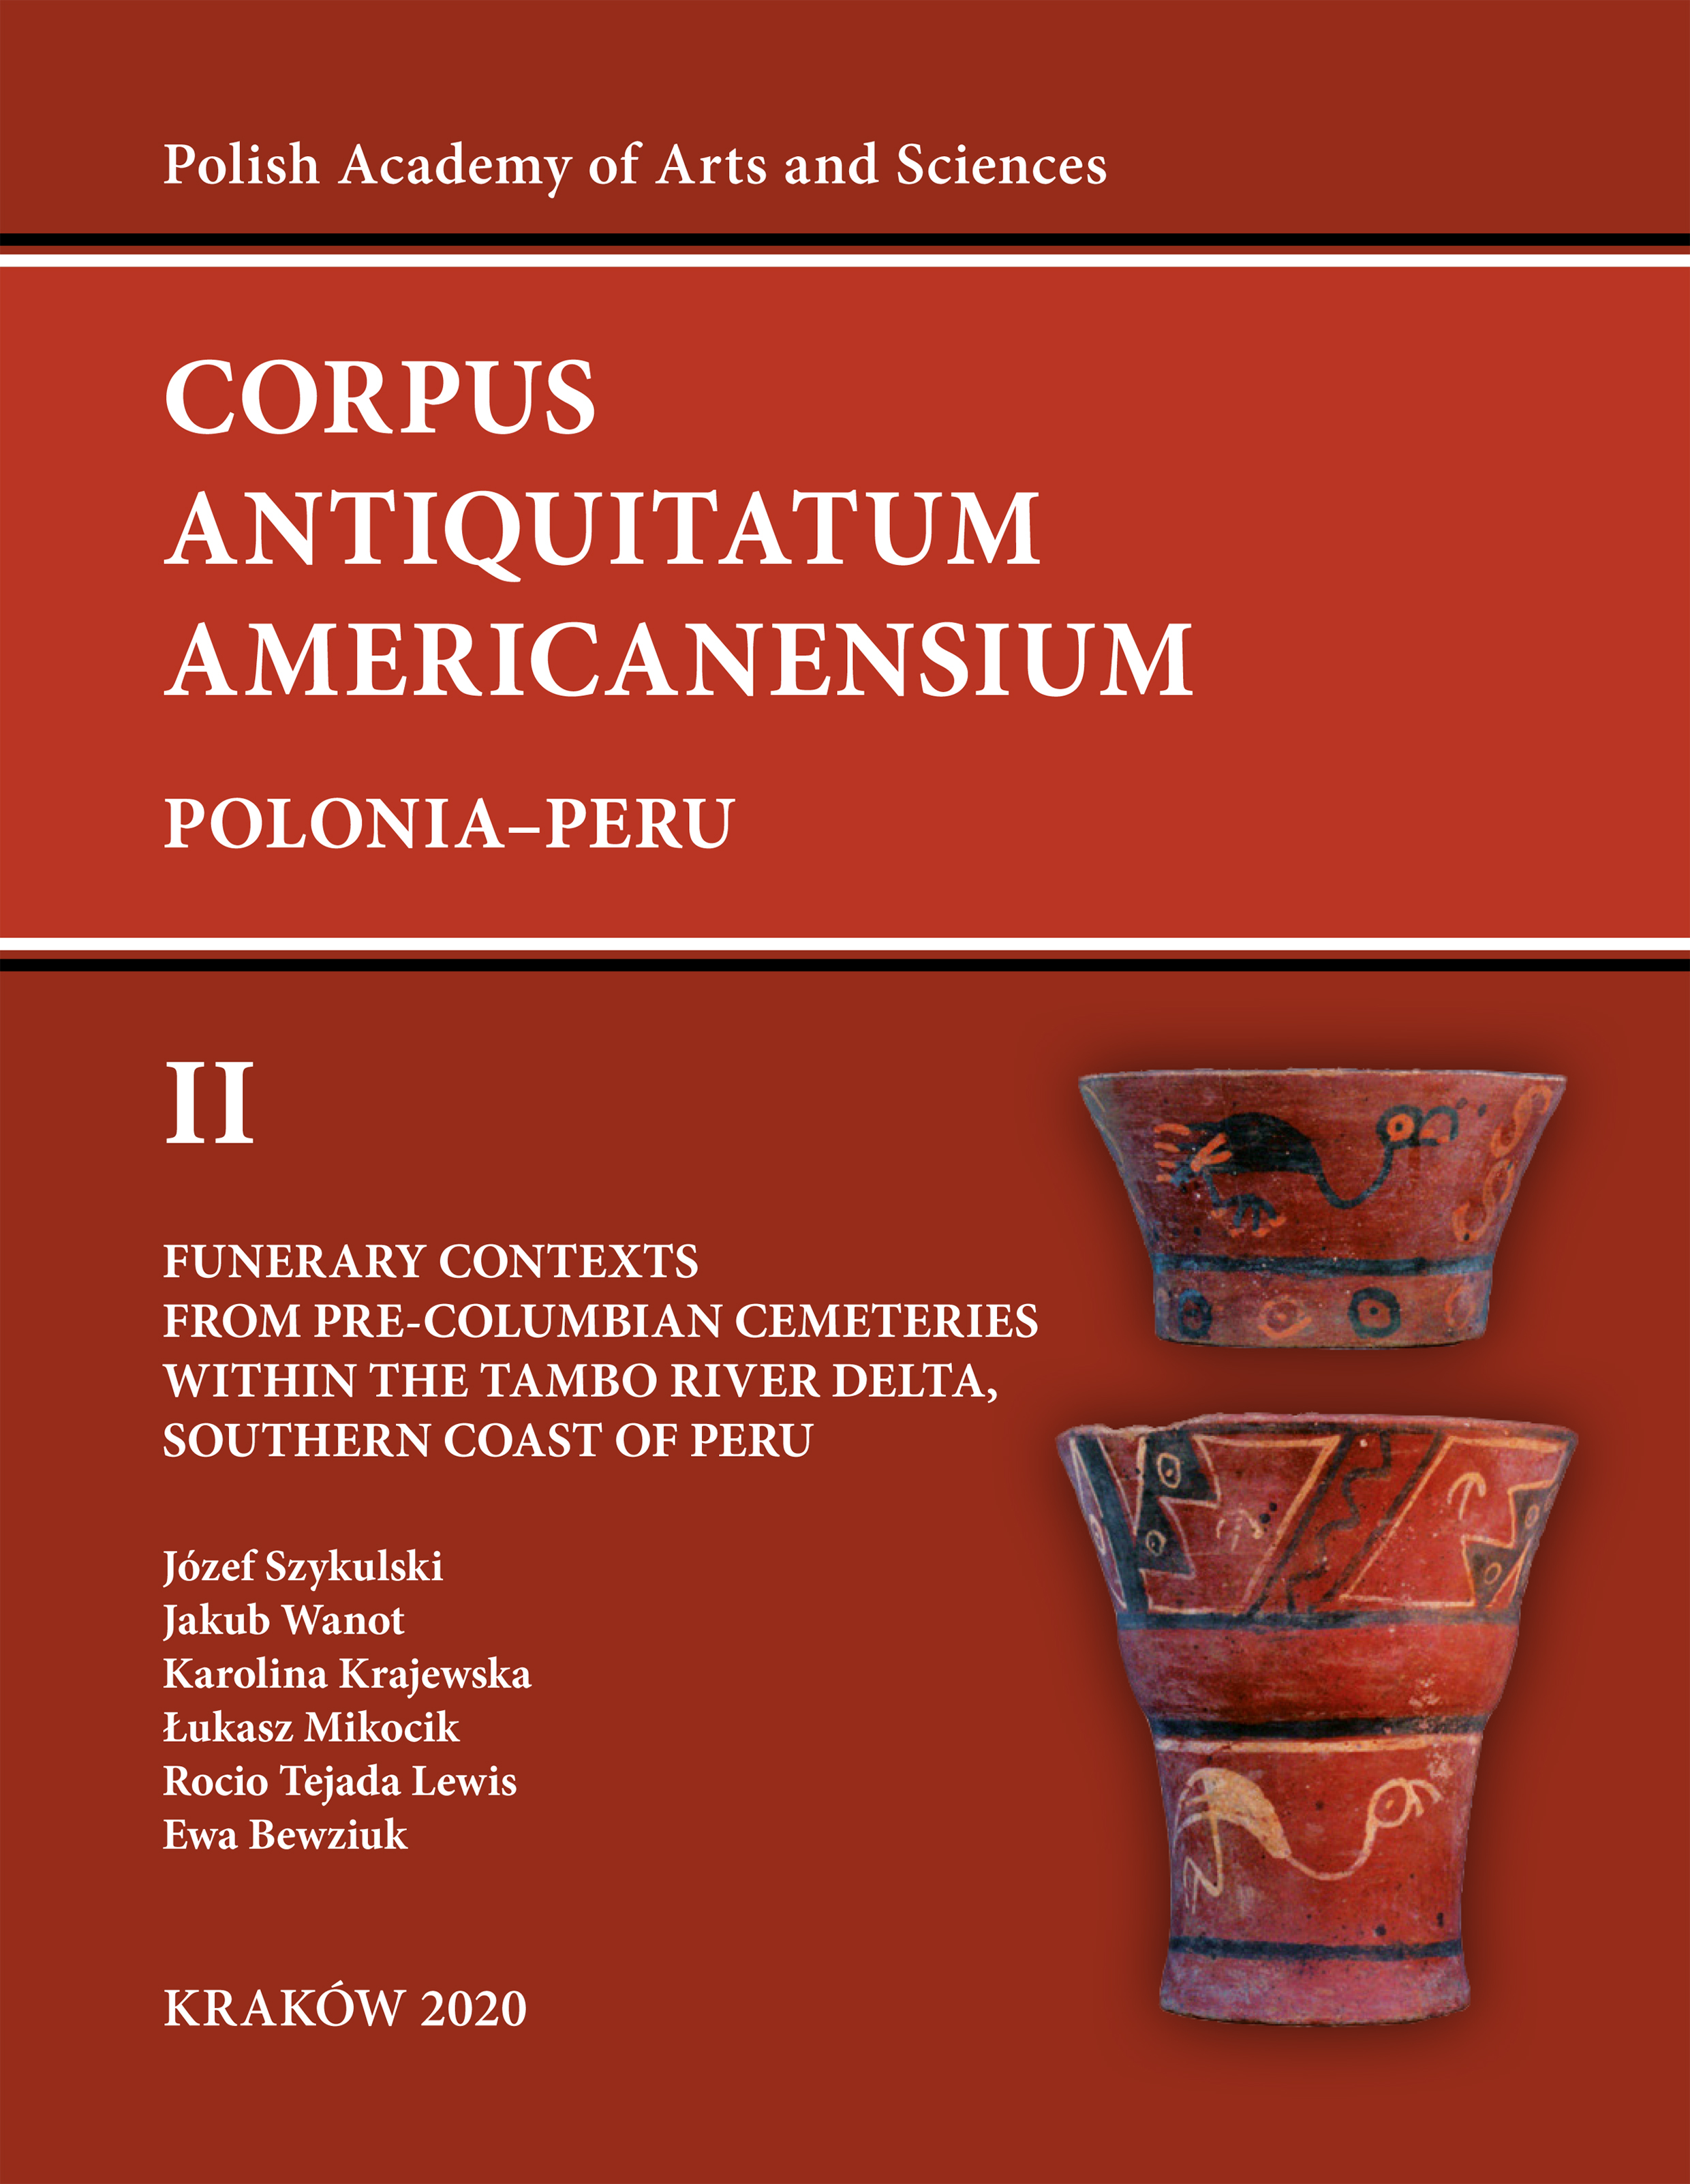 Funerary Contexts from Pre-Columbian